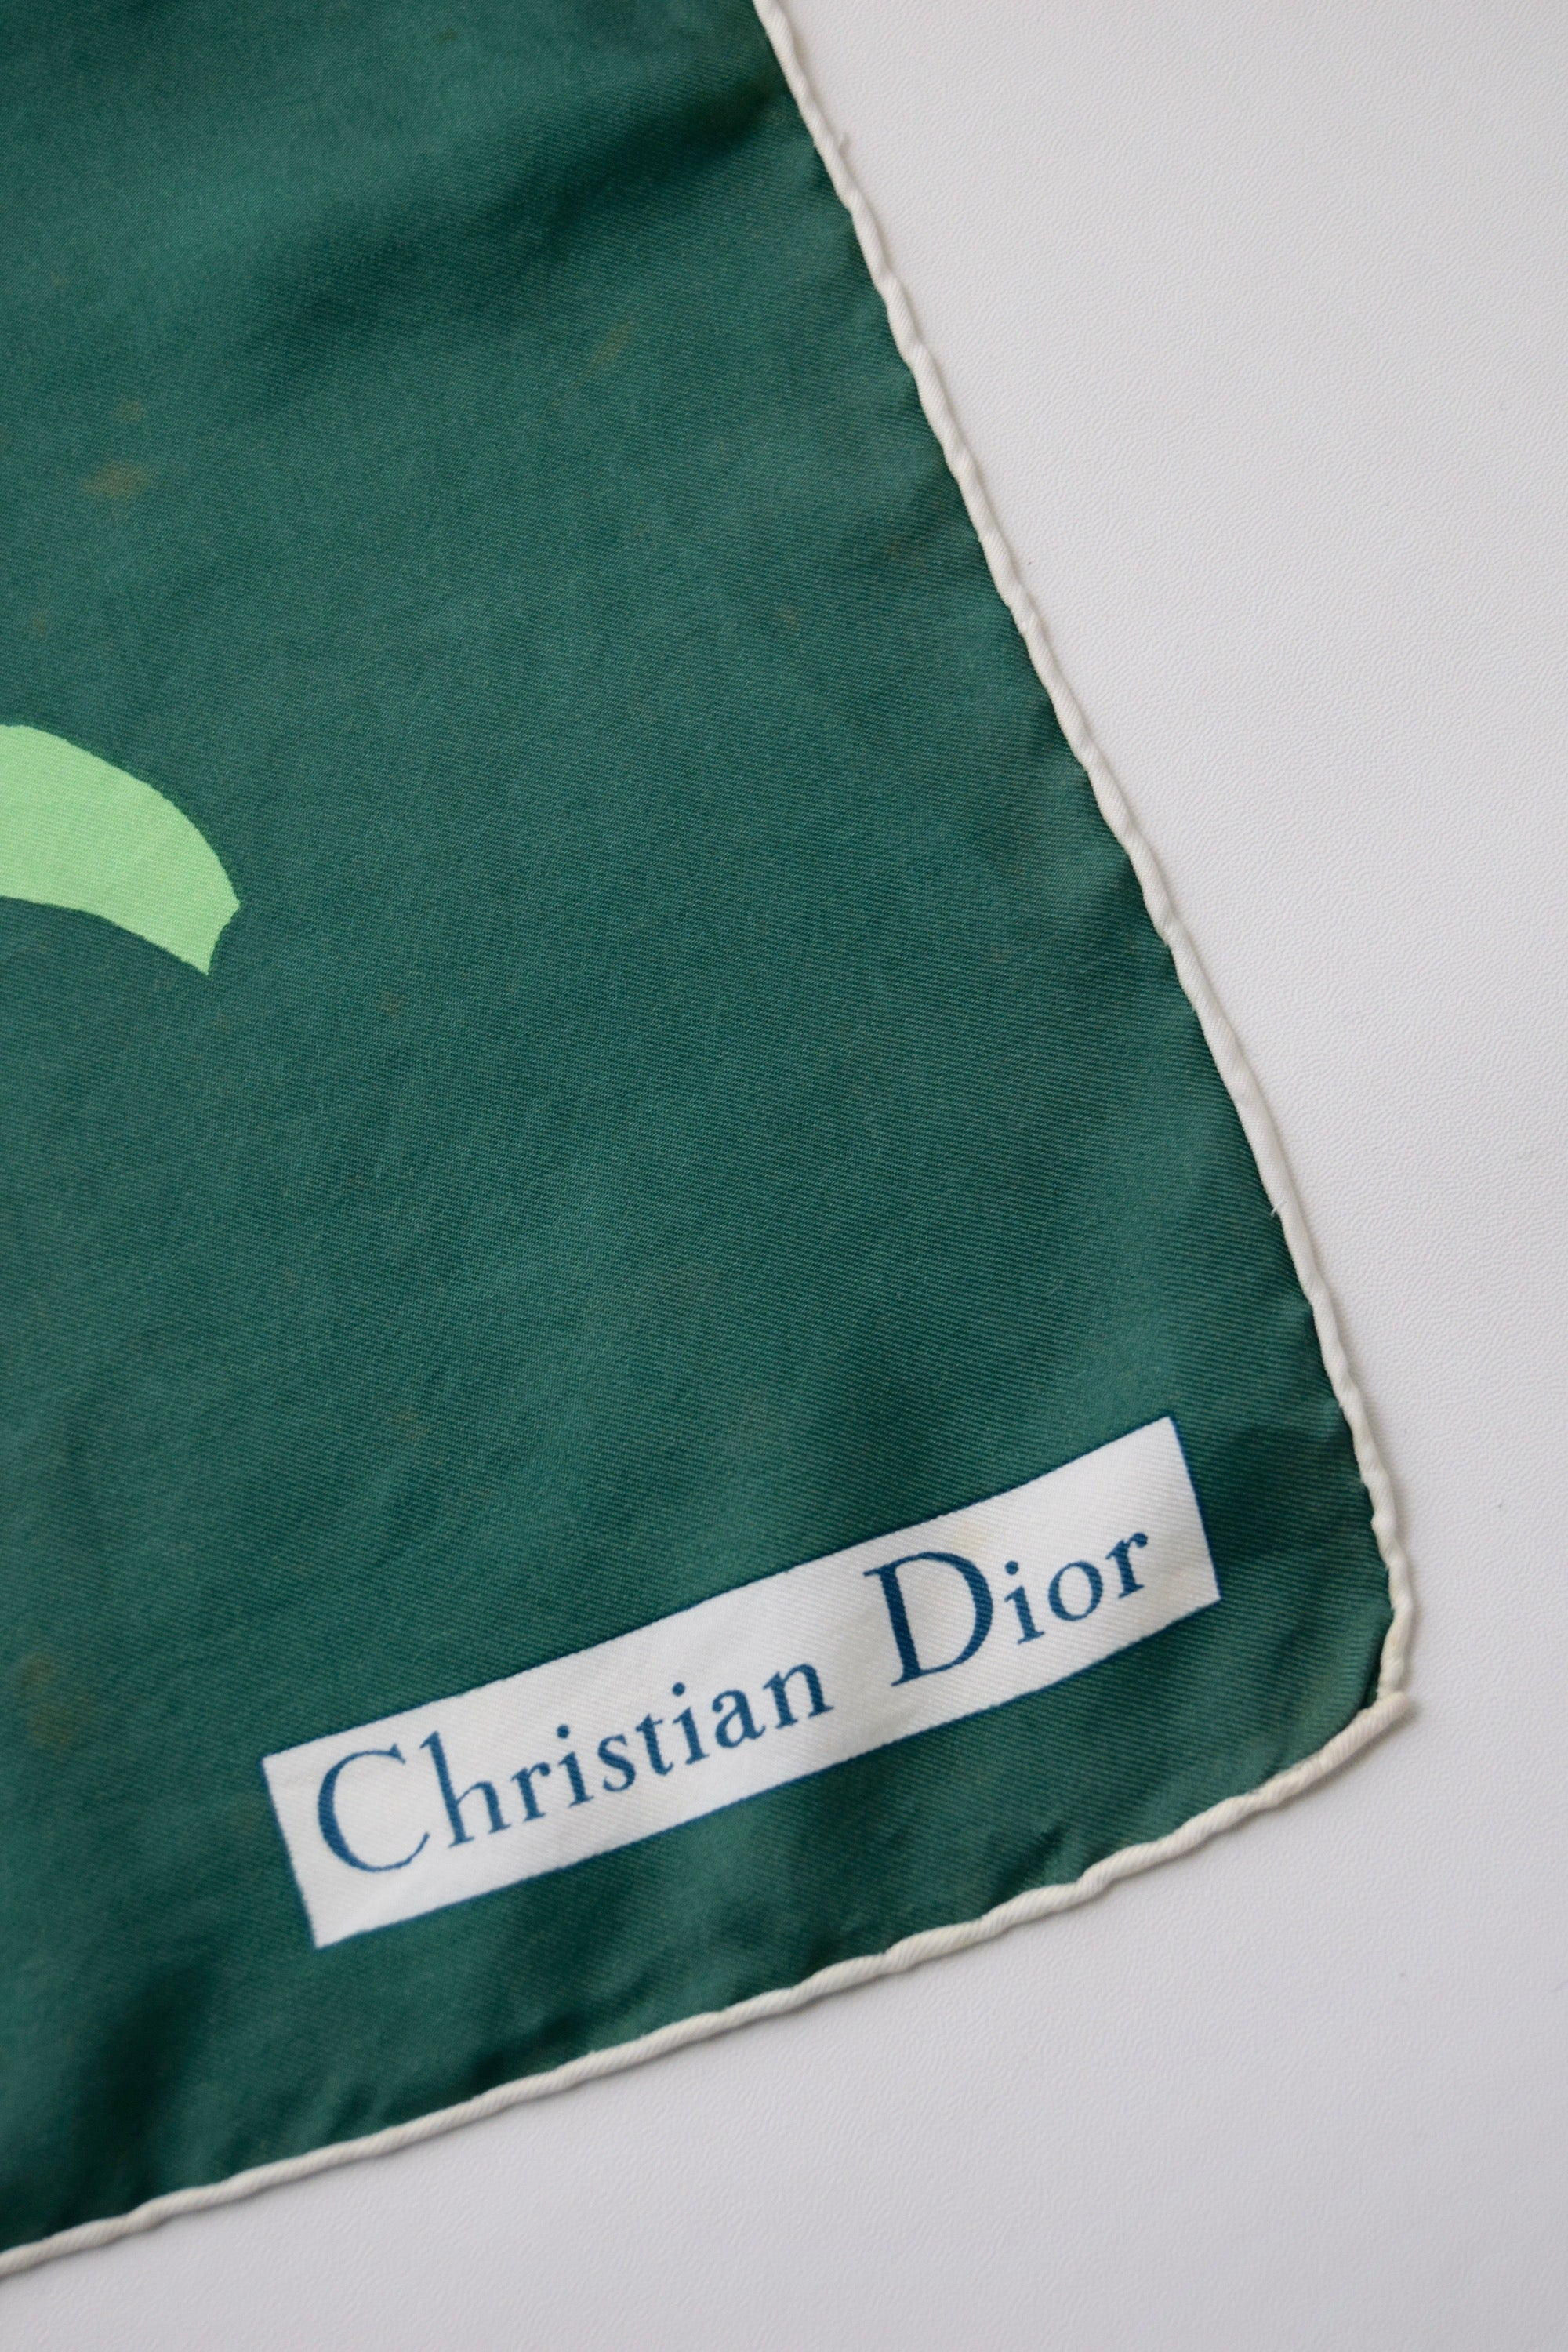 Vintage Christian Dior Shades of Green Botanical Silk Scarf